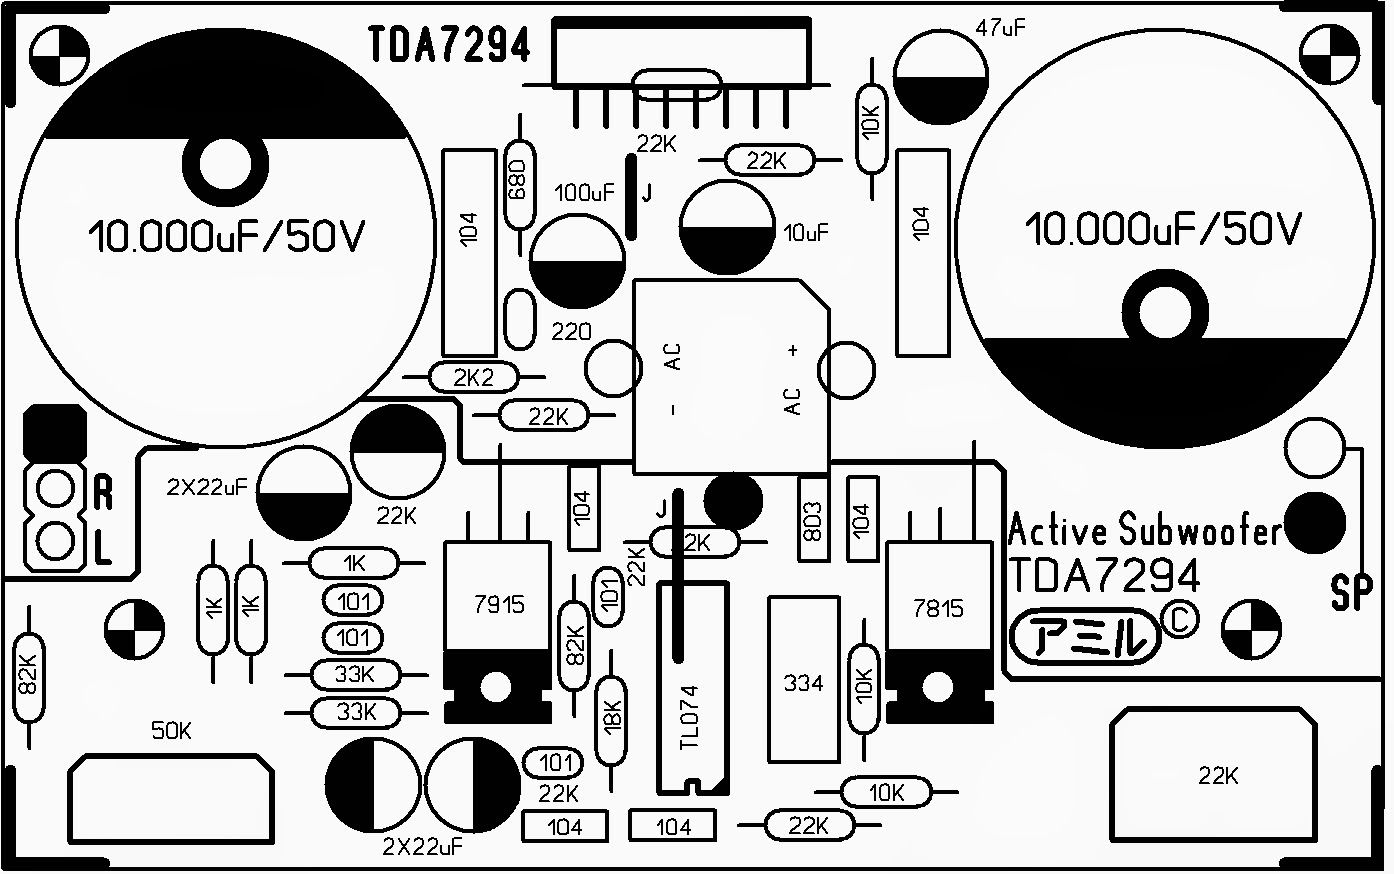 Diy electronics projects, audio,amplifier,led